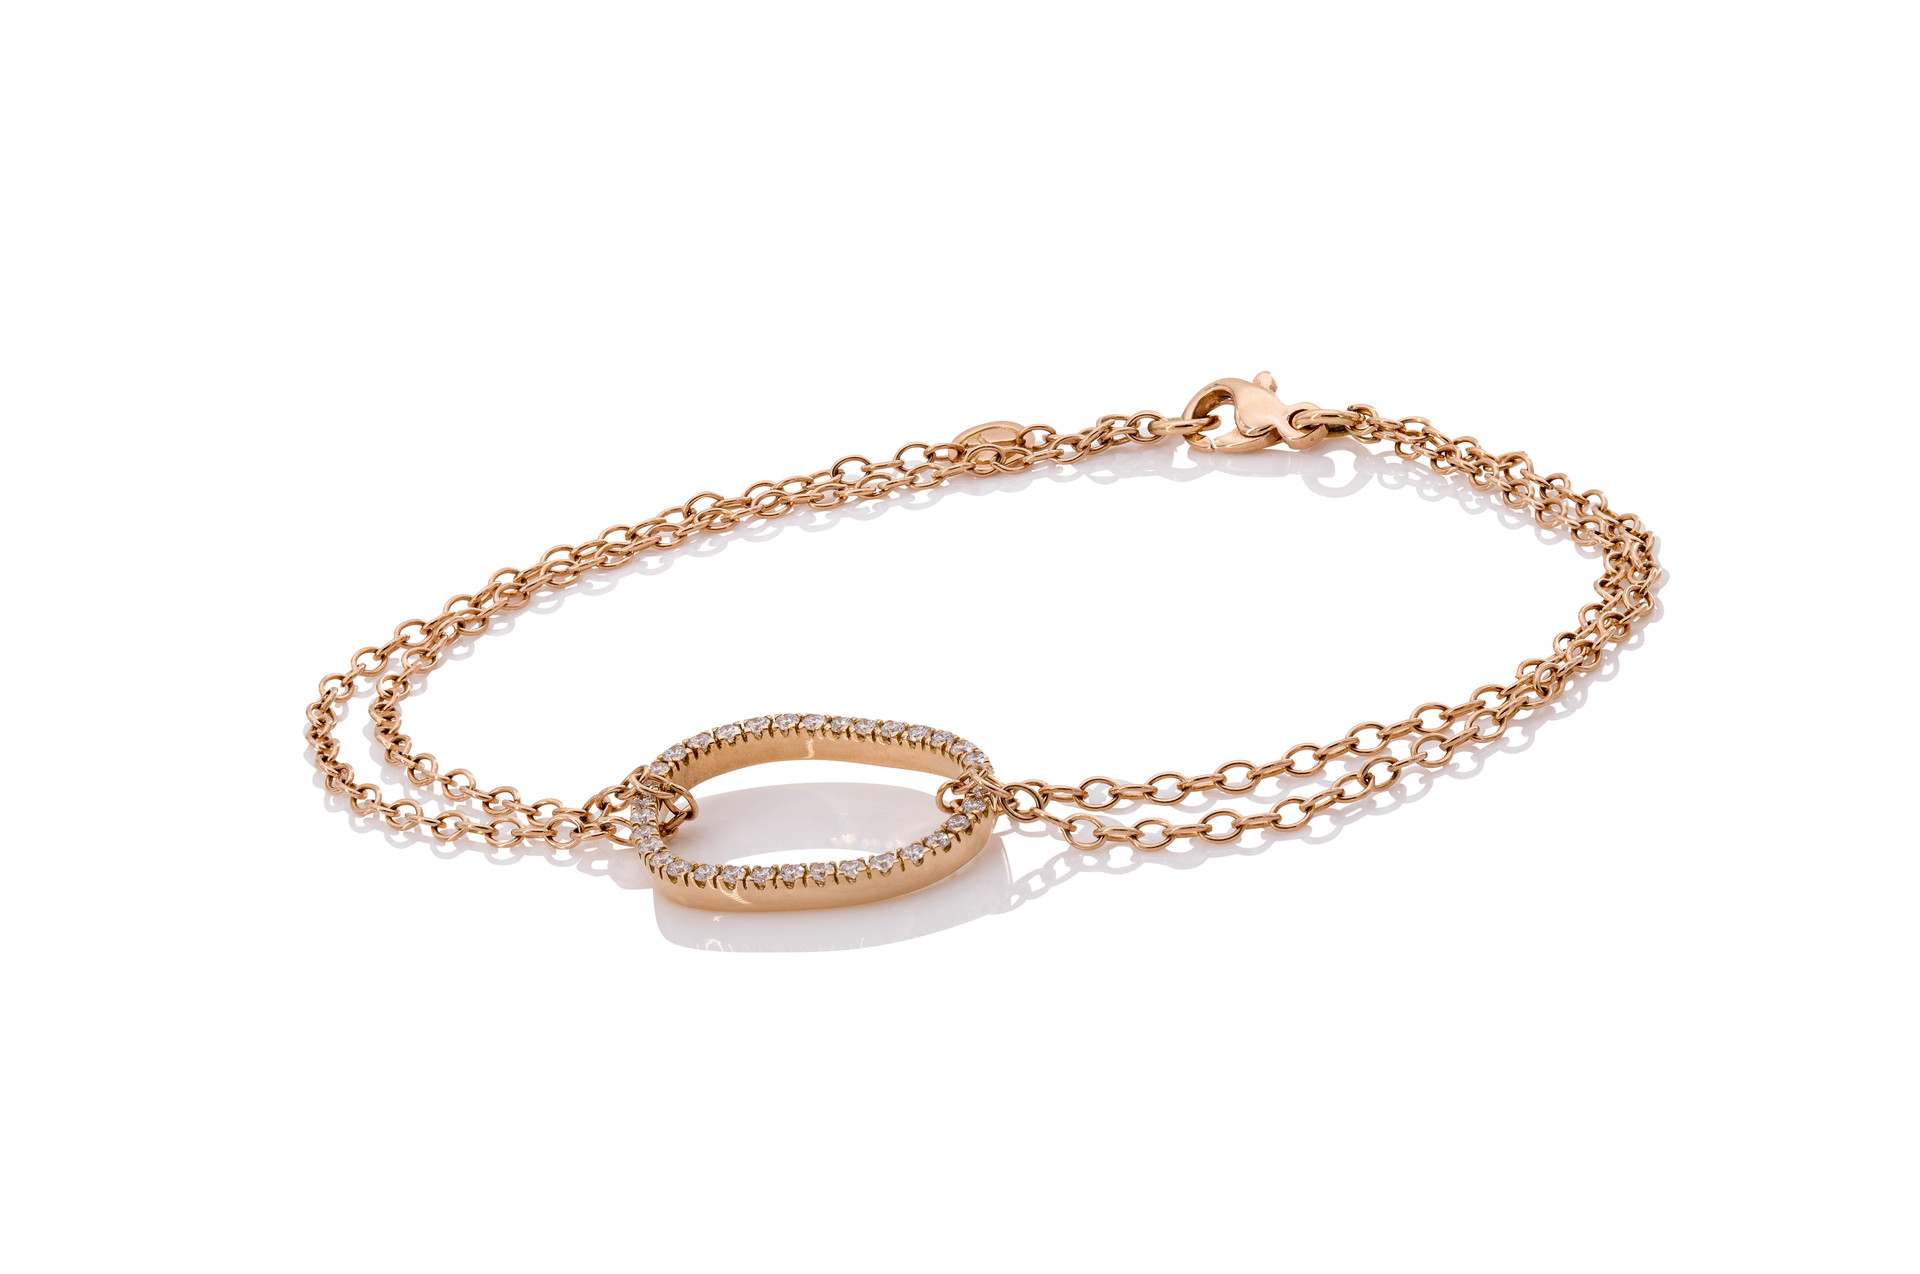 750 ROSÉGOLD ARMBAND AIR 34 brillanten 0,26ct tw-vsi